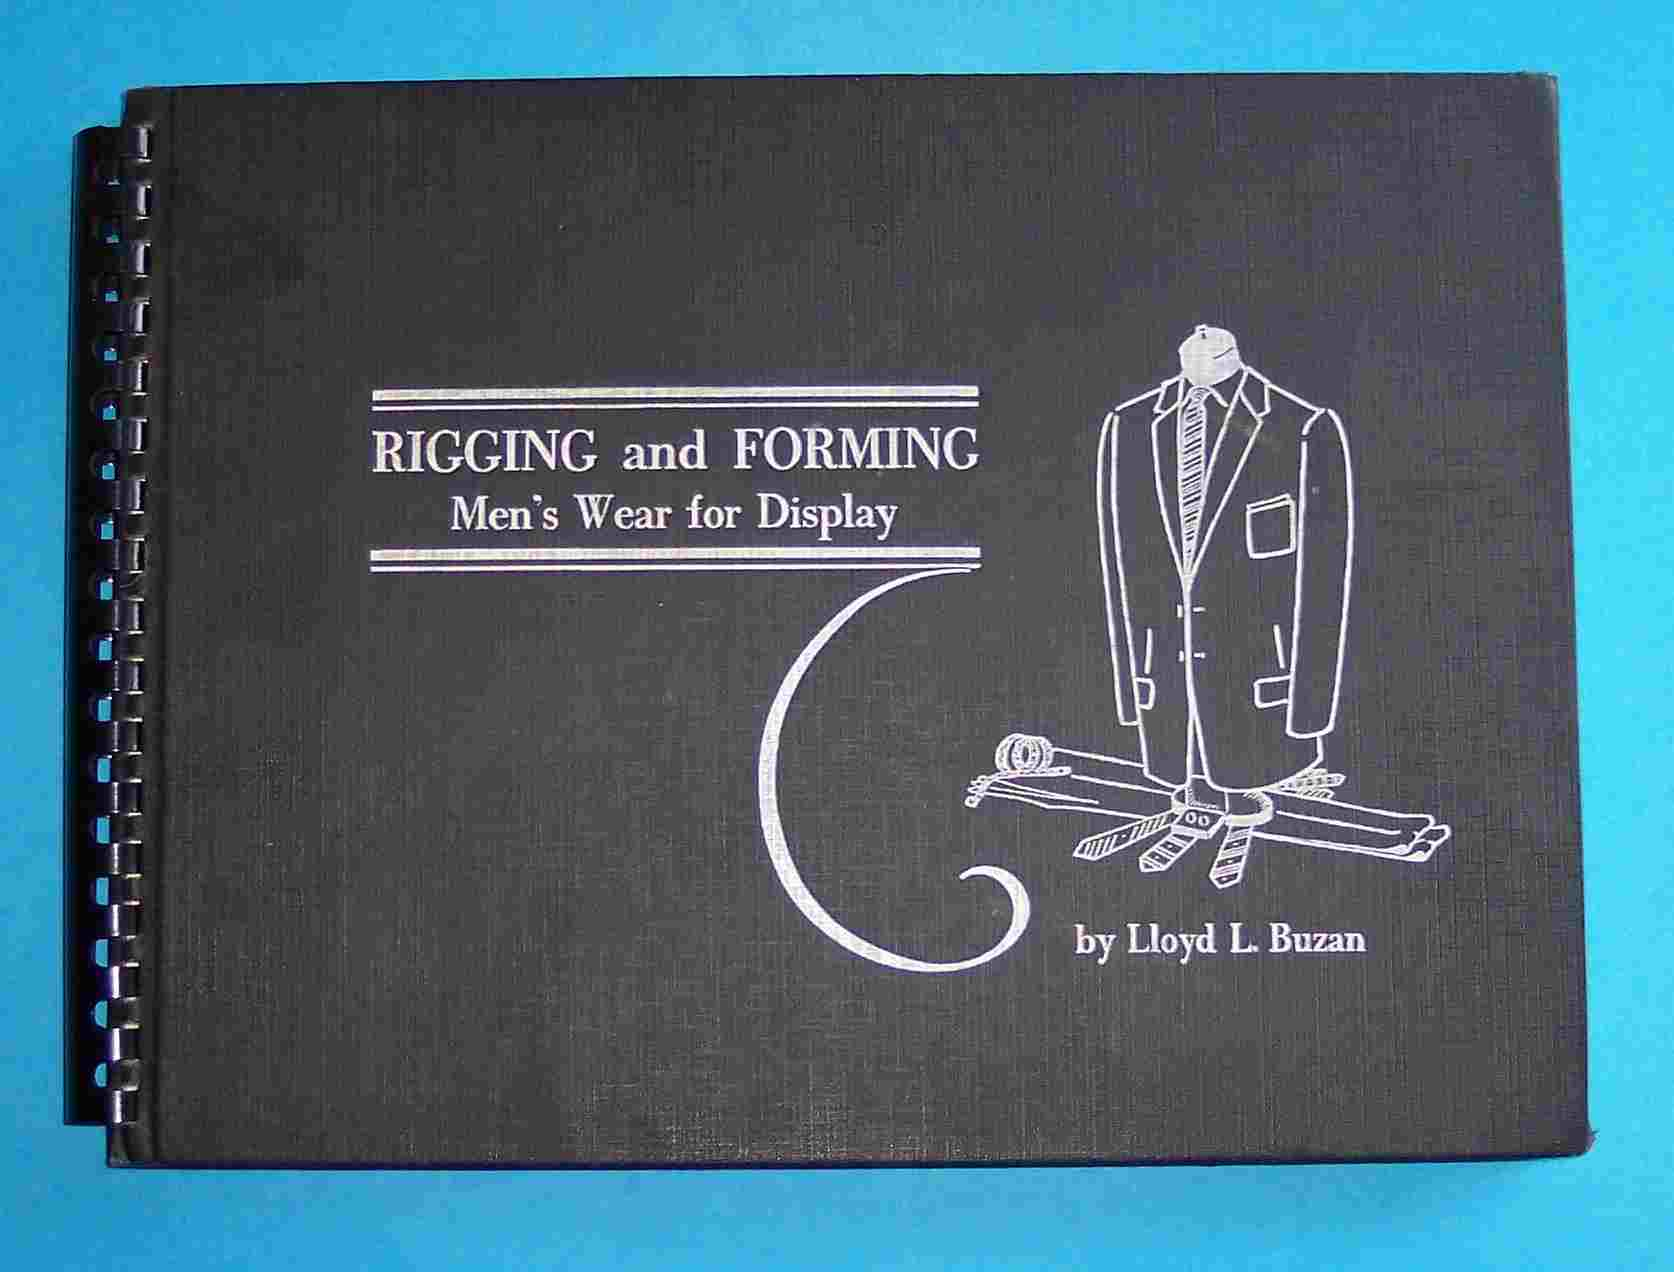 Rigging and Forming Men's Wear for Display Buzan, Lloyd L. [ ] [Couverture rigide] 106 pp. Photos. Spine, corners bumped. Plastic comb binding. A complete guide to attractively displaying men's clothing for sale. Heavy book. ; Oblong 4to 11  - 13  tall Very Good with No dust jacket as issued